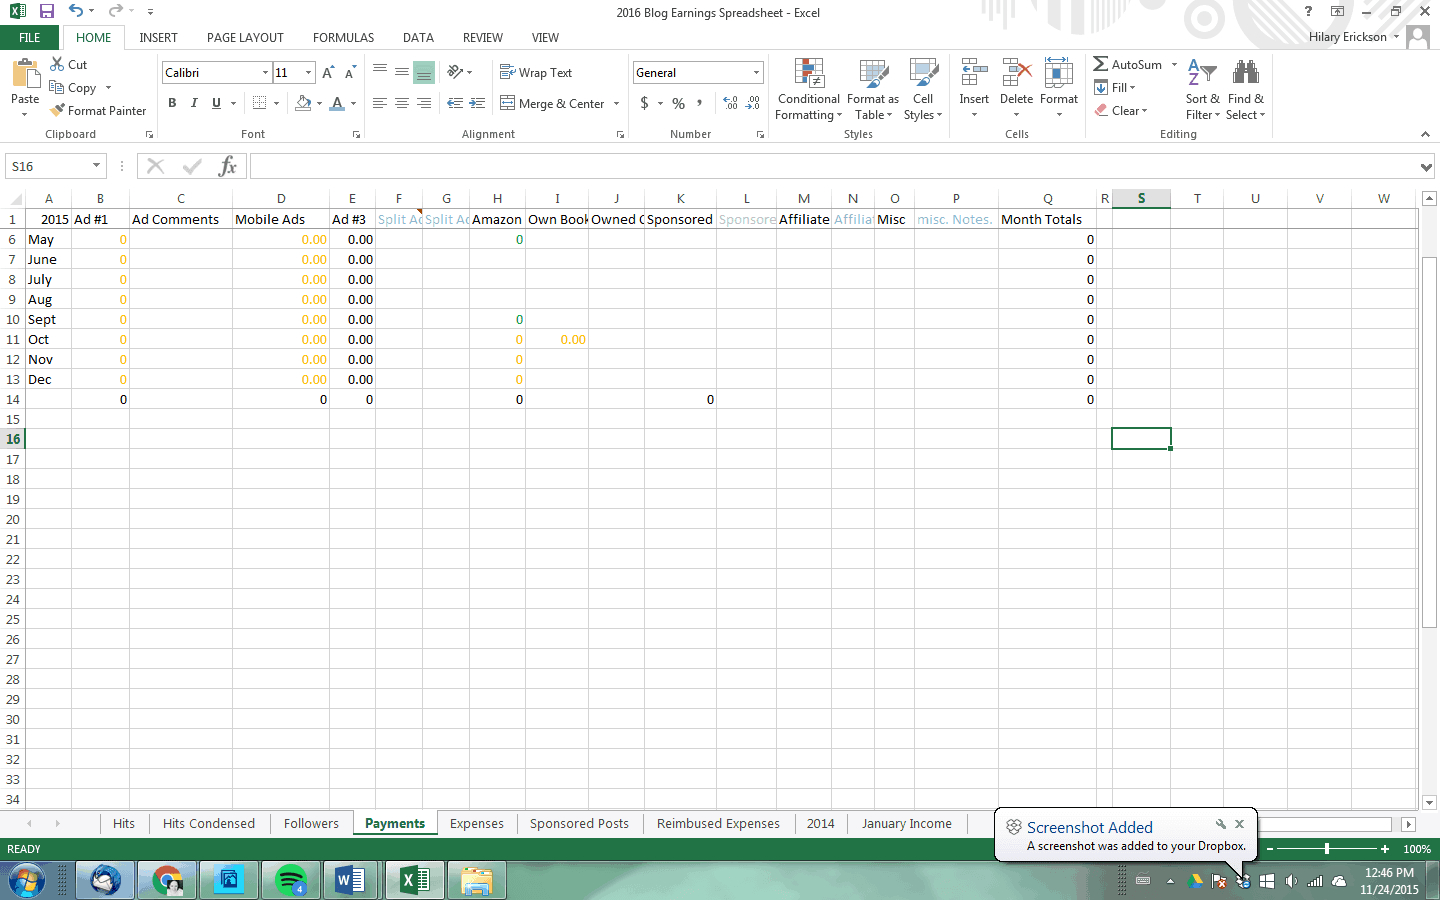 Owner Earnings Spreadsheet For Blogging Income Spreadsheet  Pulling Curls